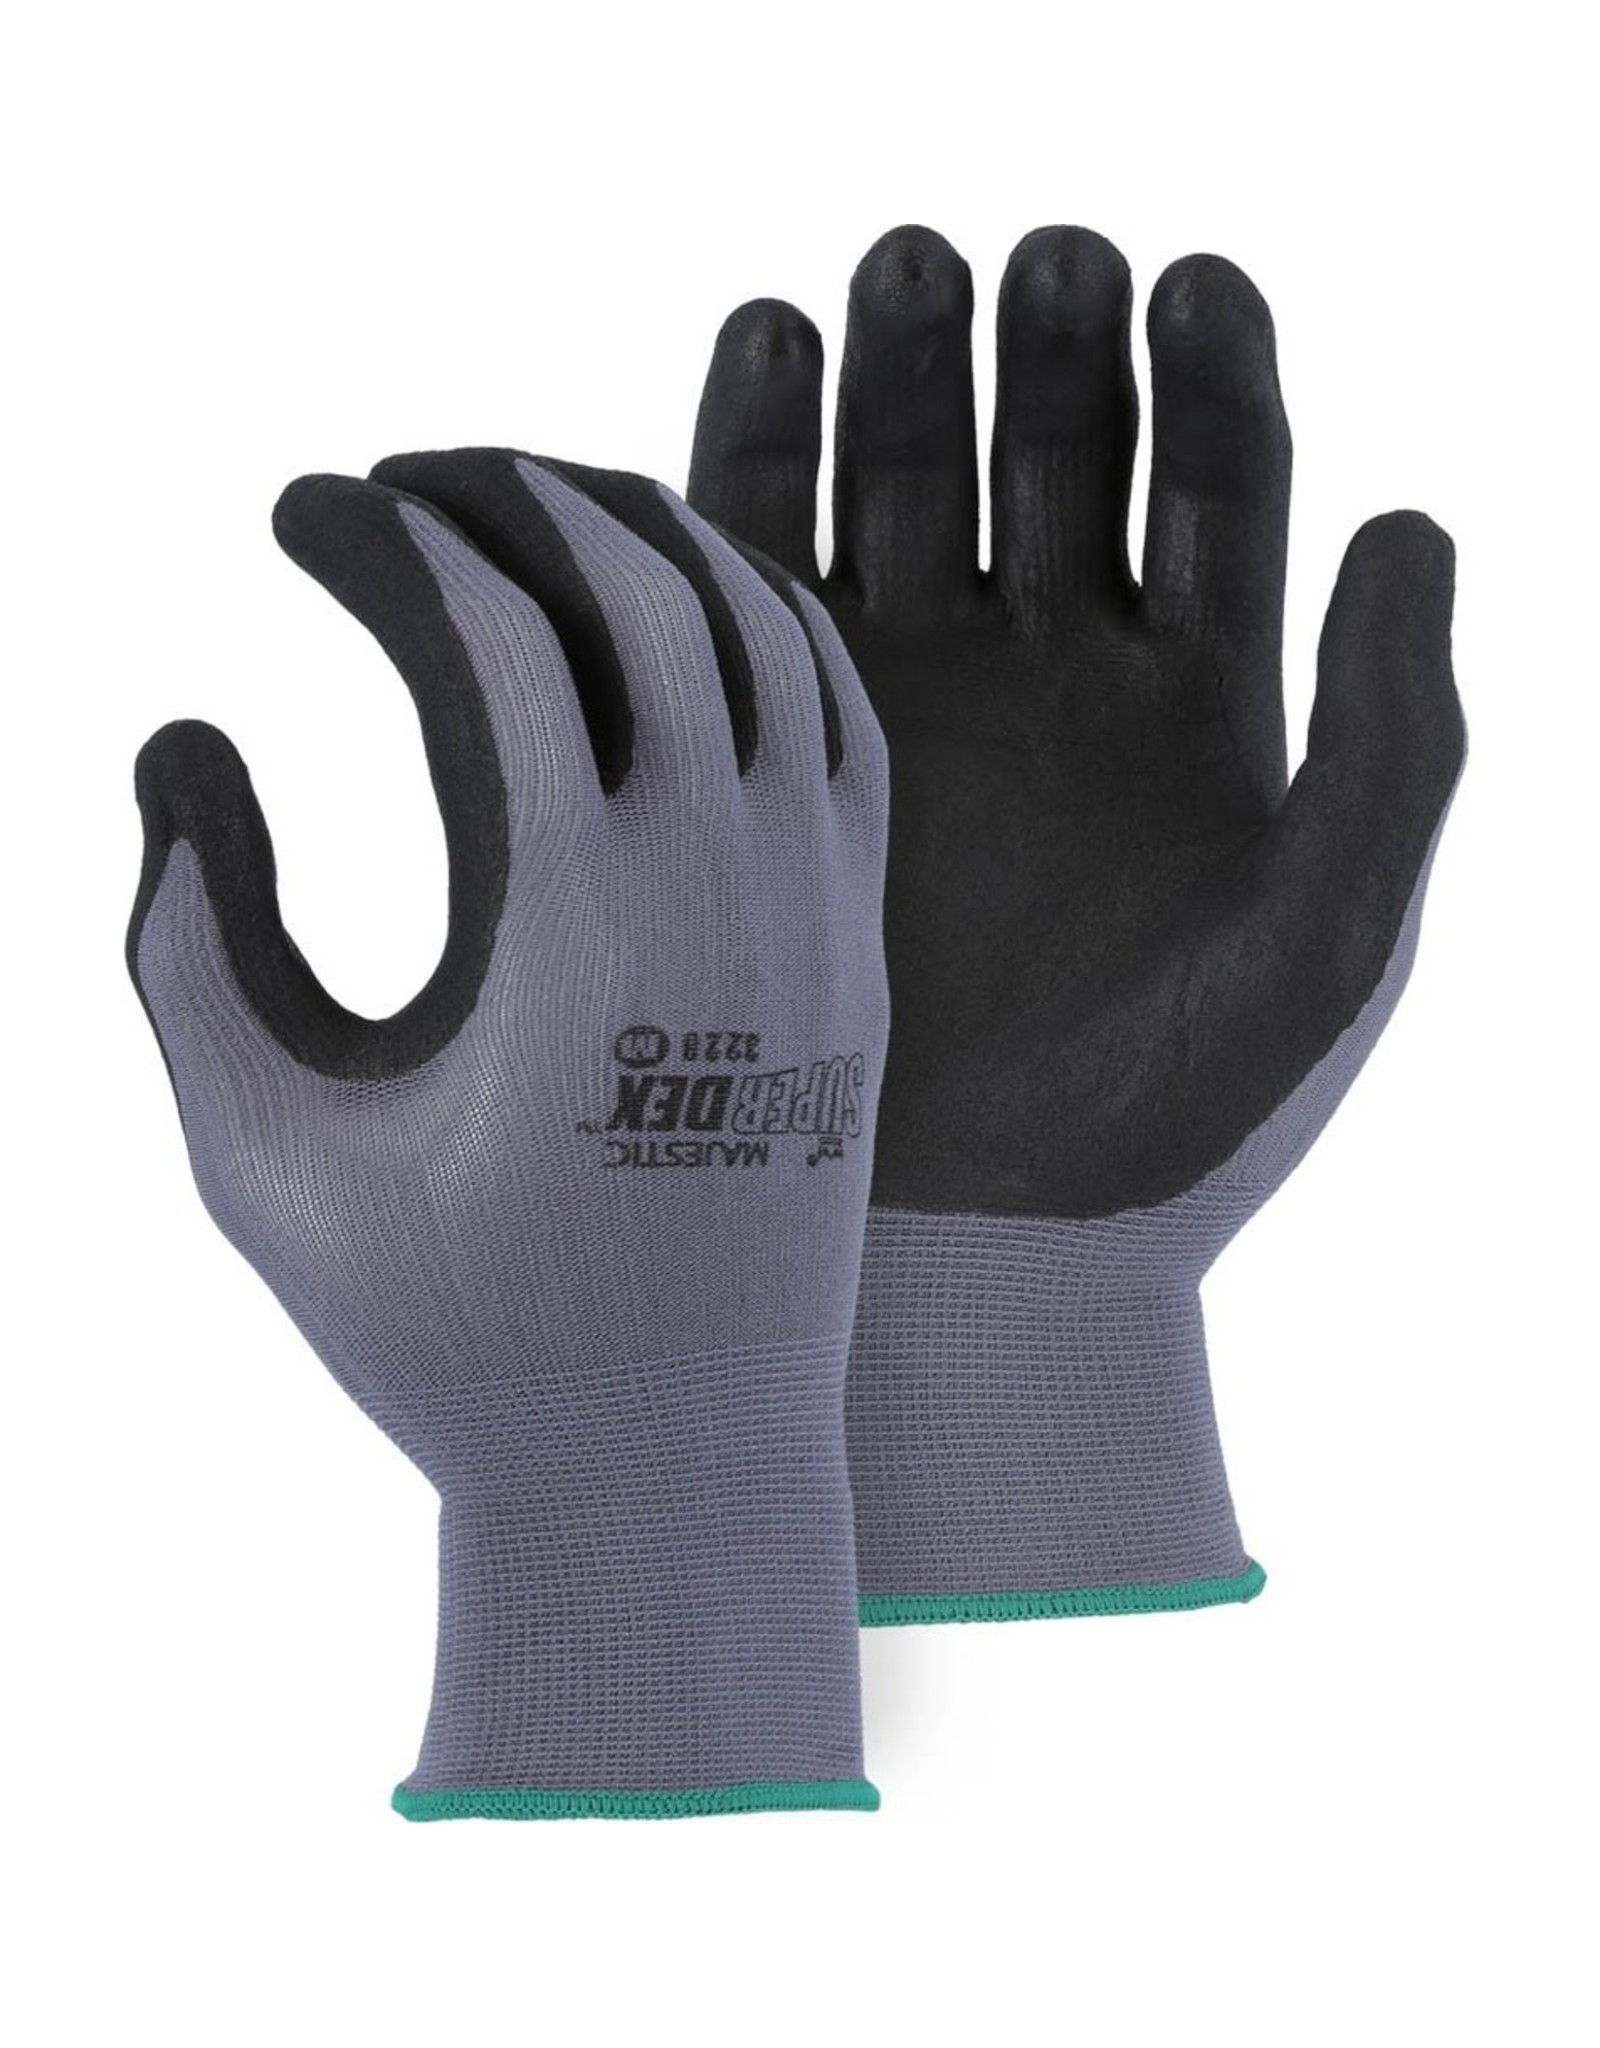 Majestic Glove SuperDex Micro Foam Nitrile Palm Coated Glove on Nylon Shell